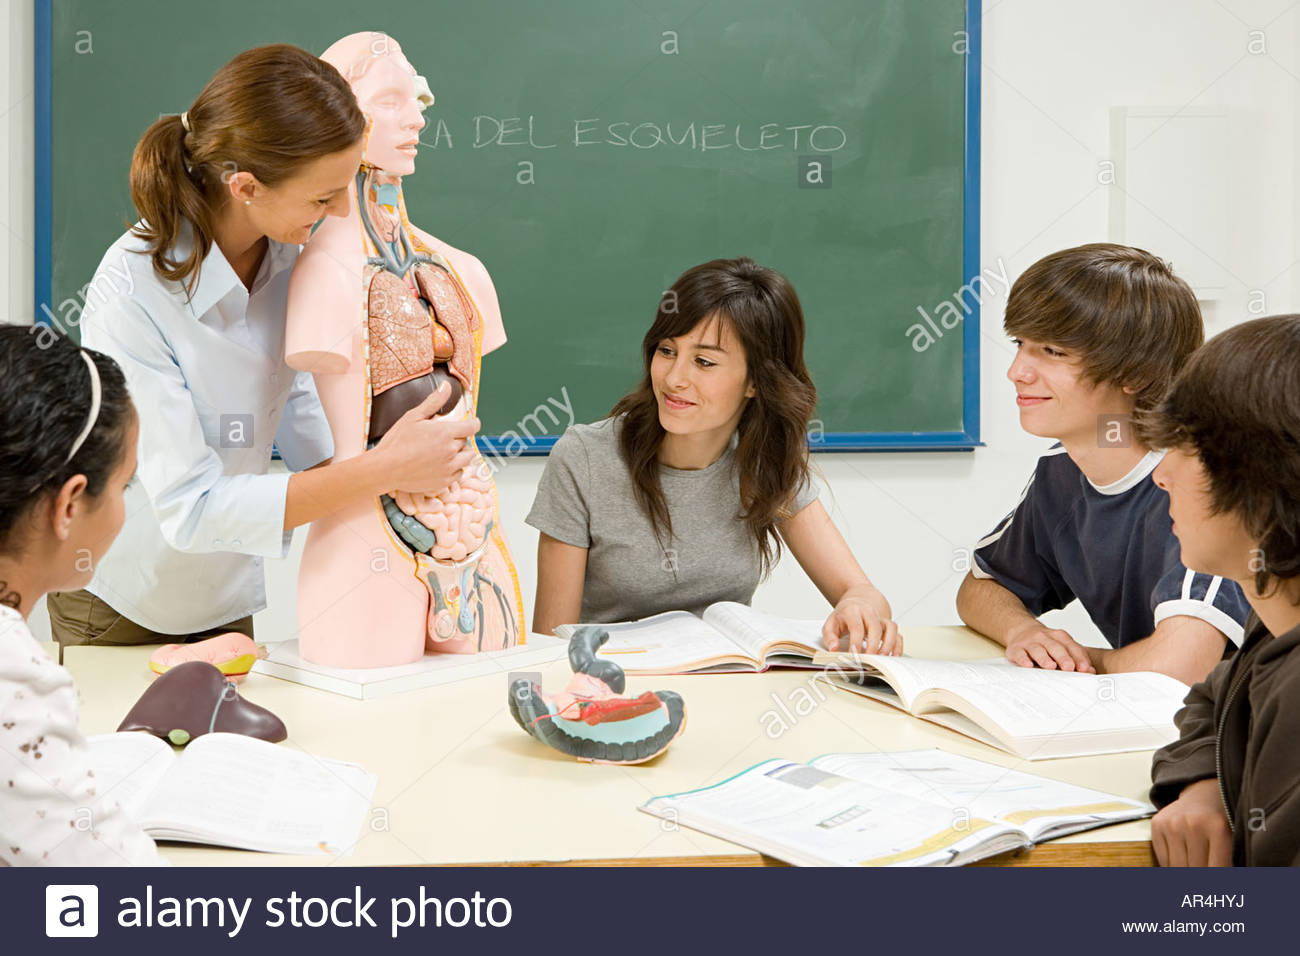 Pupils and teacher with anatomical model - Stock Image